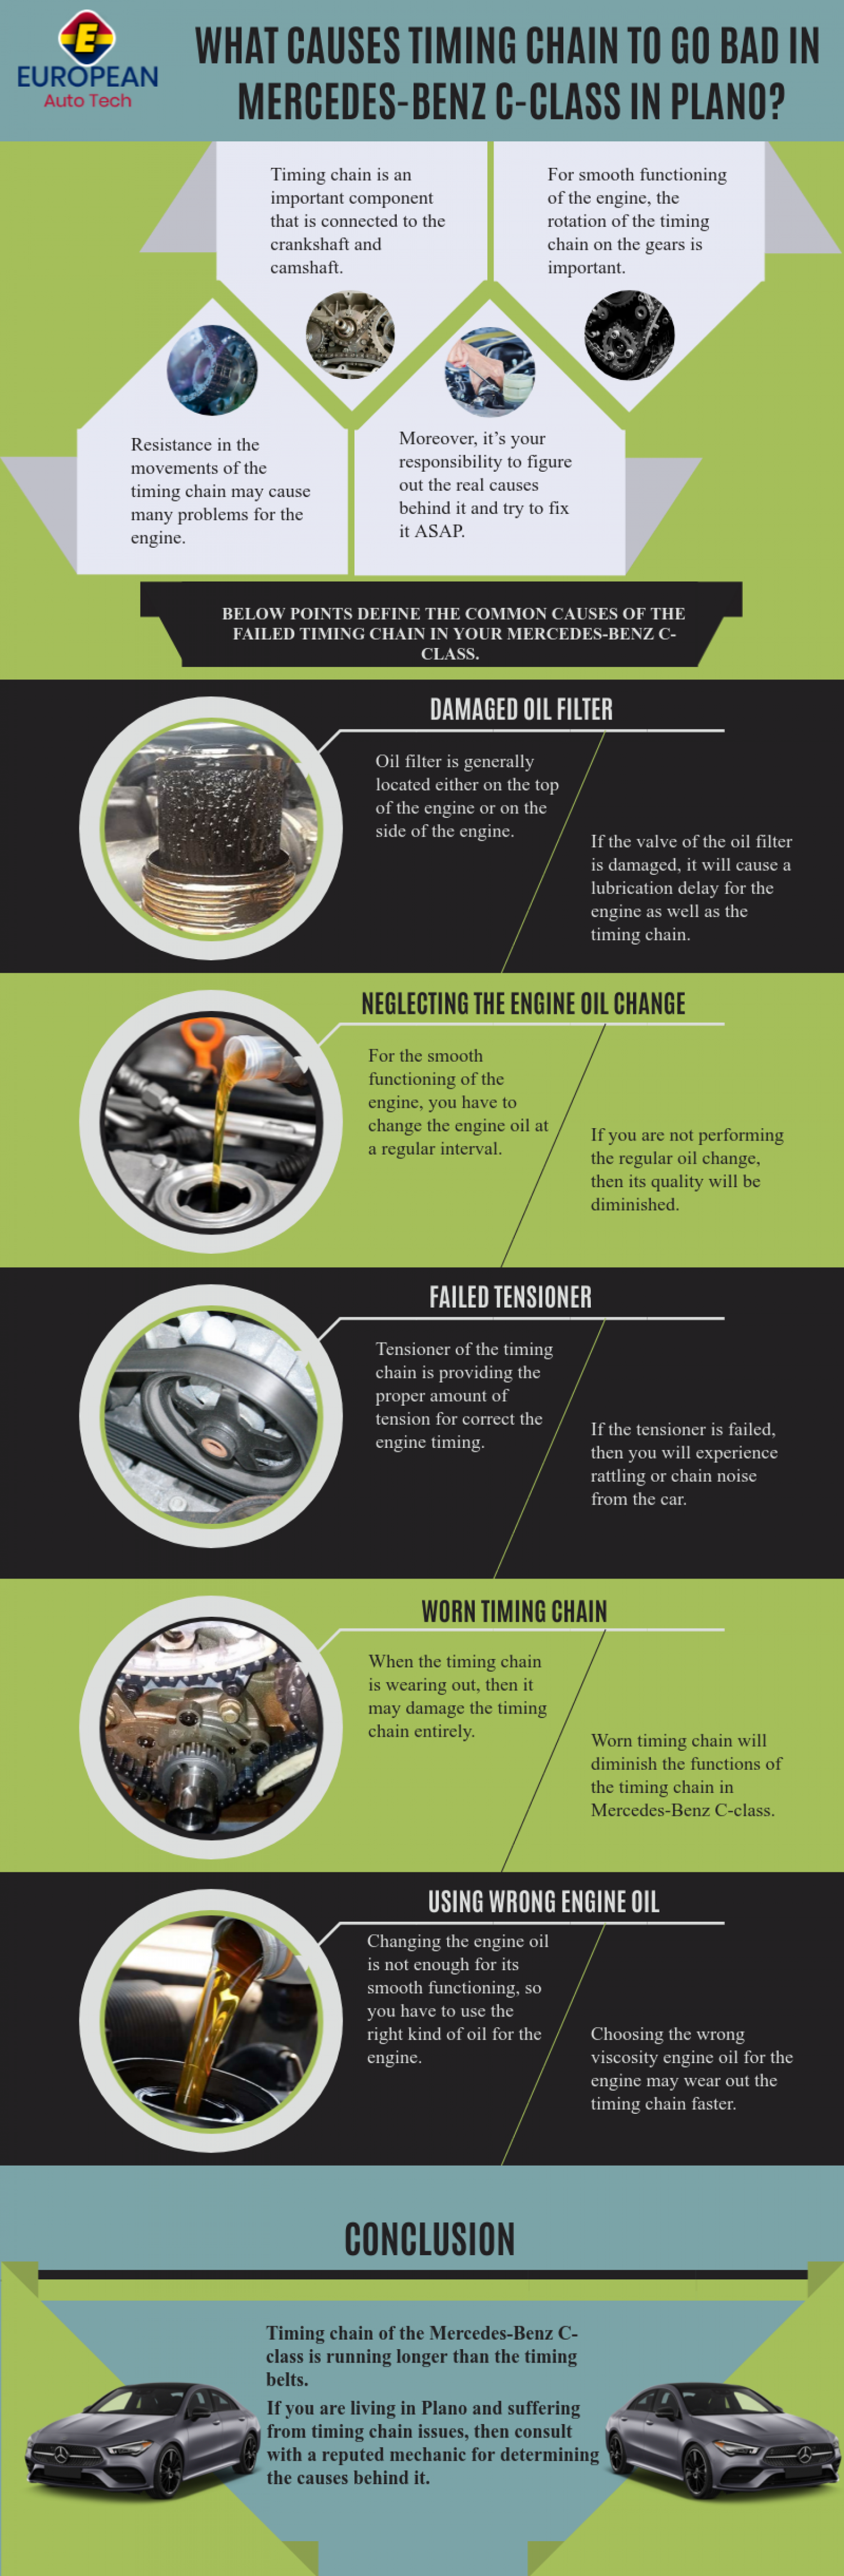 What Causes Timing Chain To Go Bad In Mercedes-Benz C-Class in Plano? Infographic